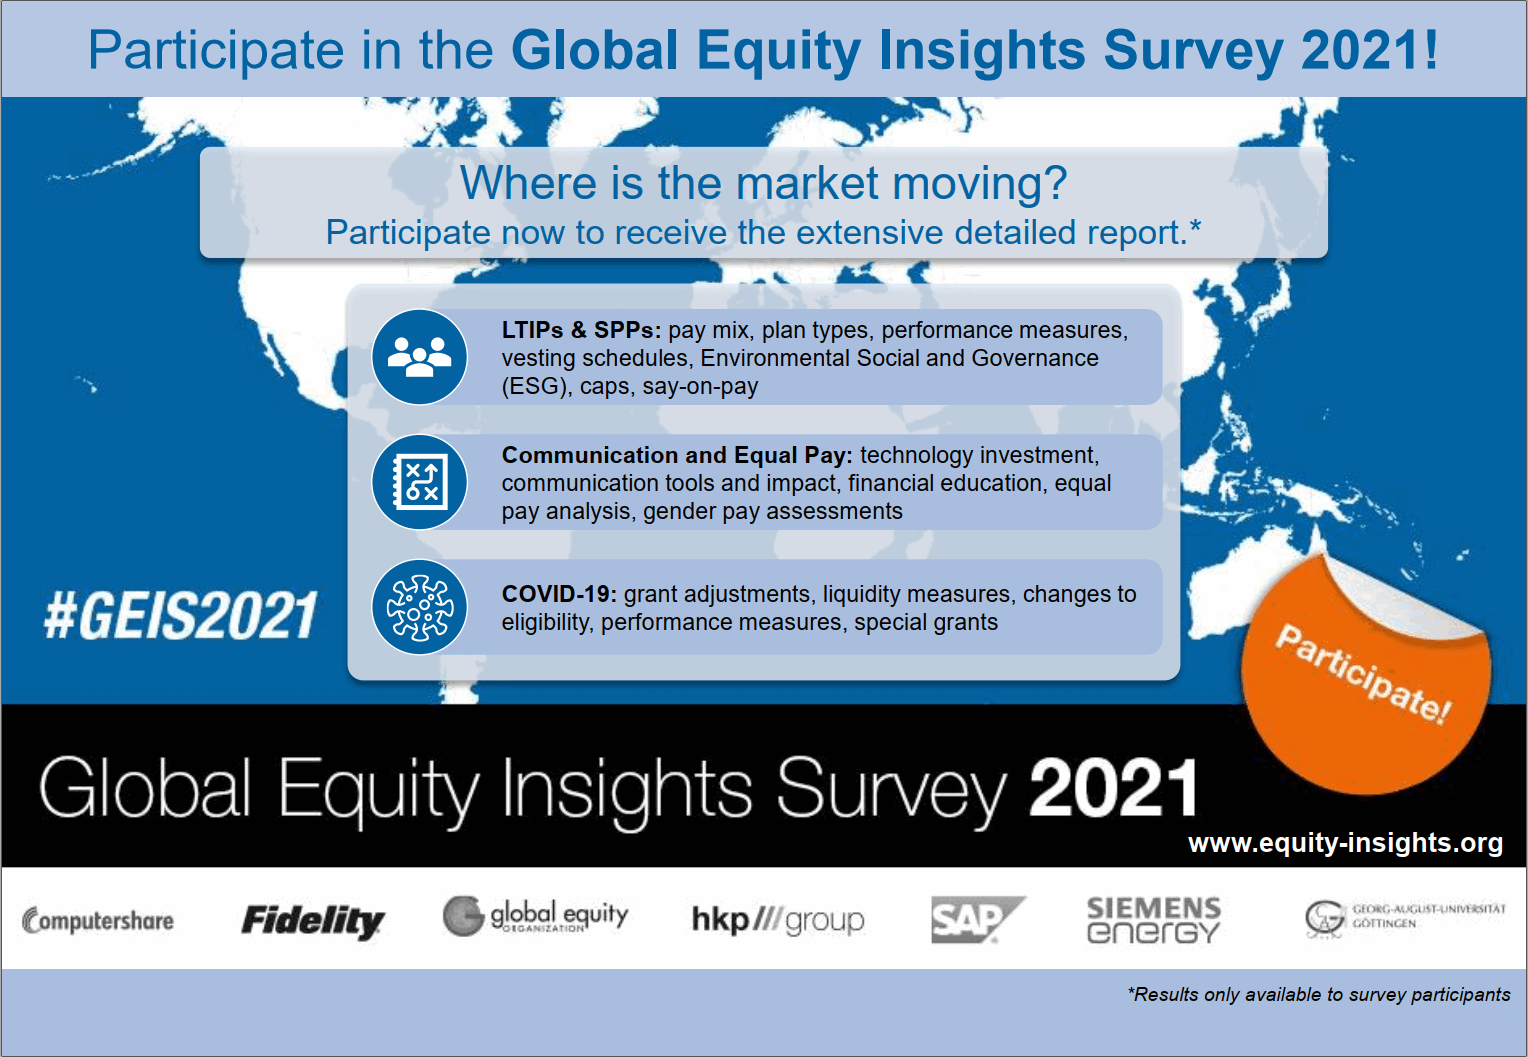 GEO's Global Equity Insights Survey 2021